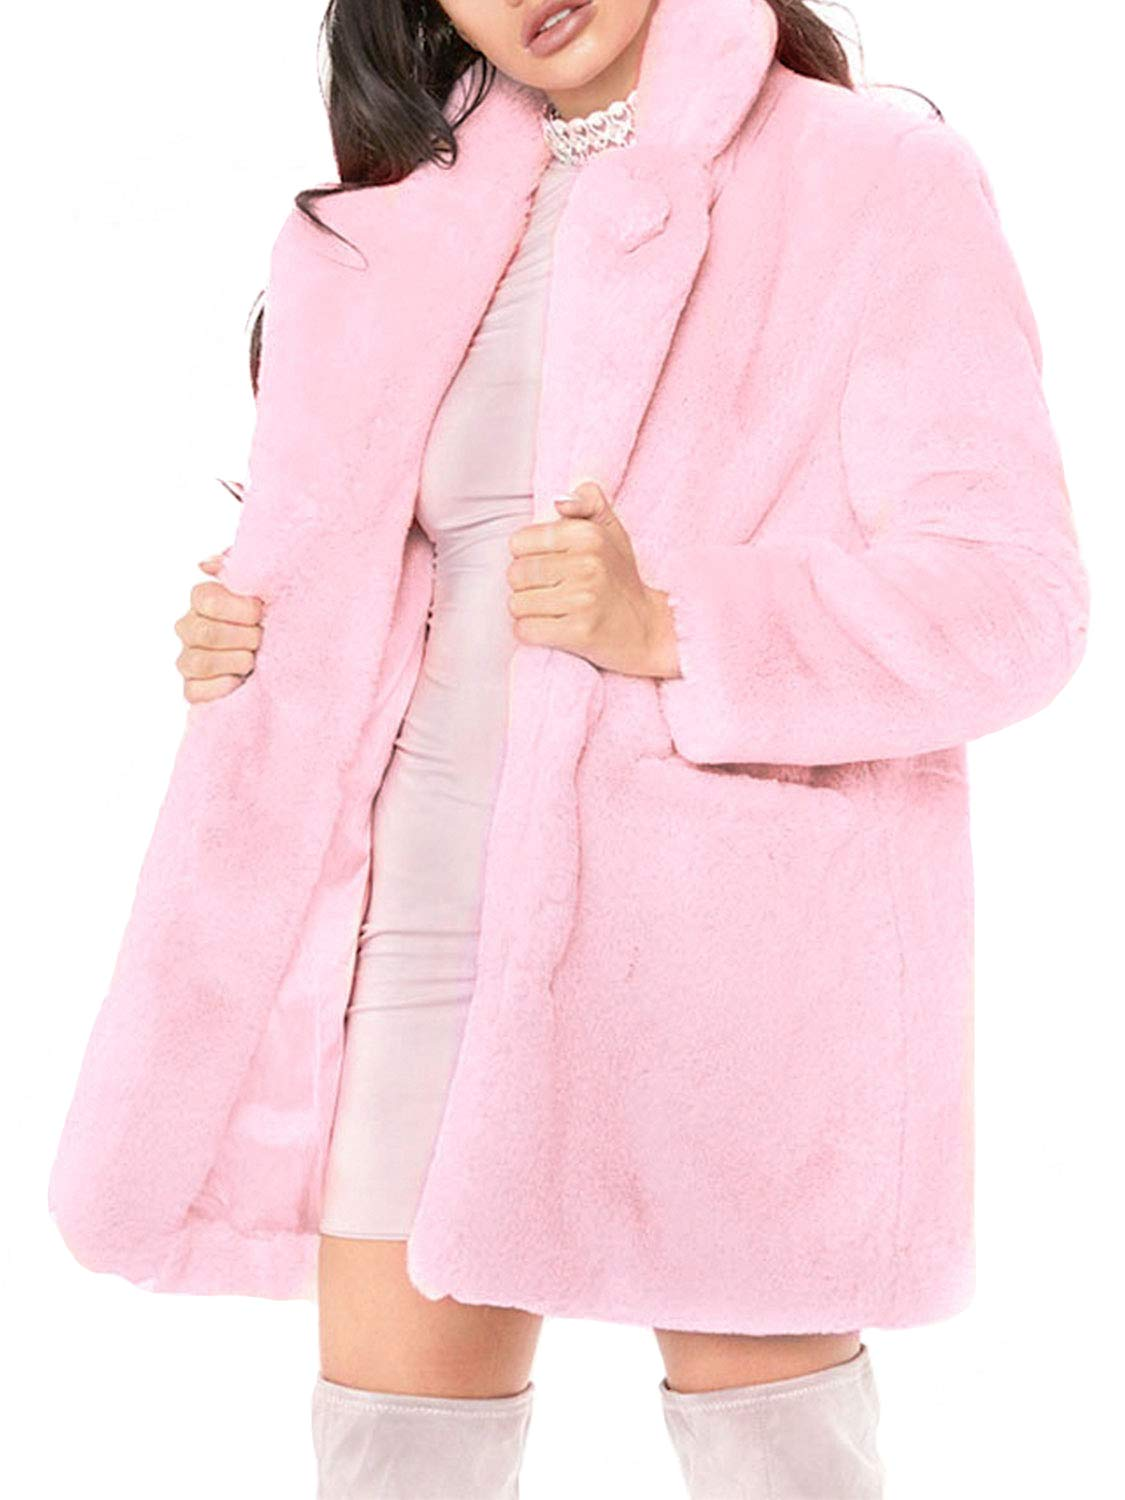 Glamaker Women's Winter Warm Shaggy Faux Fur Cardigan Coat Long Sleeve Thick Outwear with Pockets Rose Pink